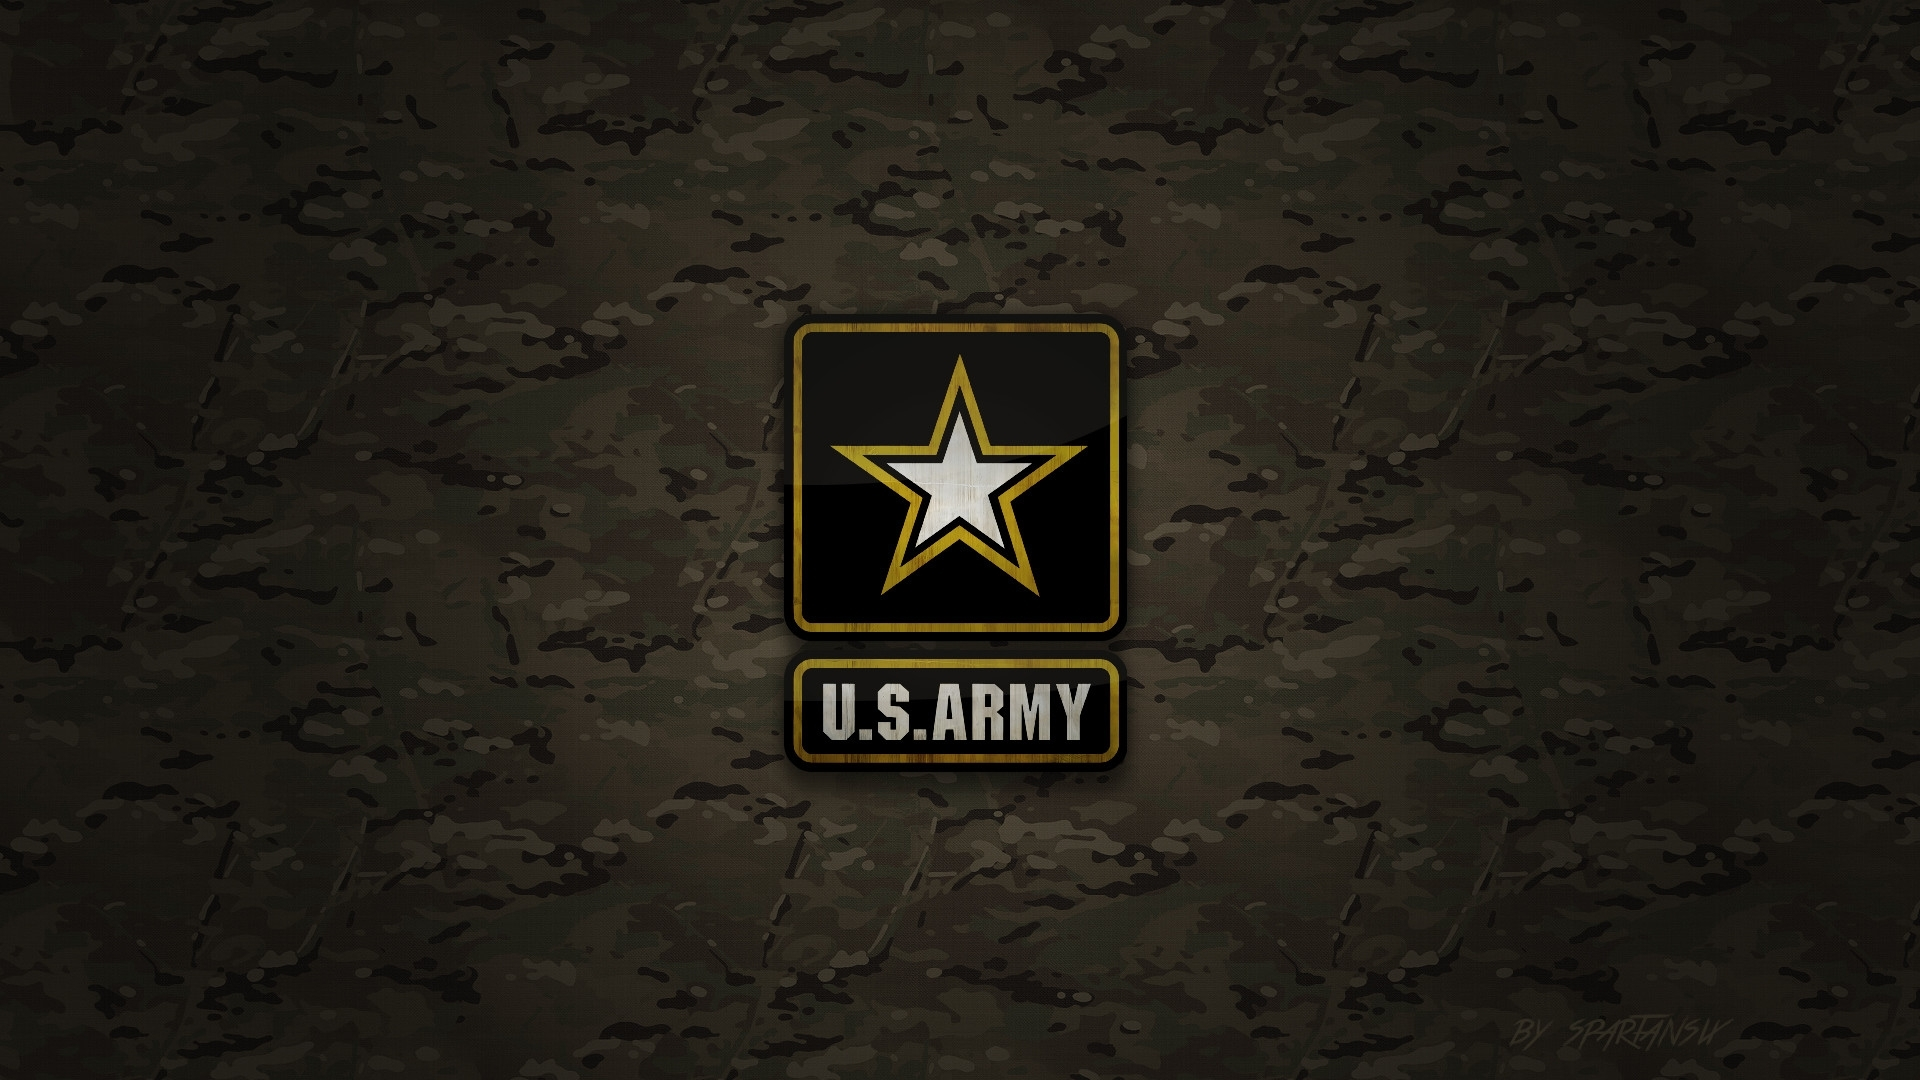 us army military police wallpaper (57+ images)